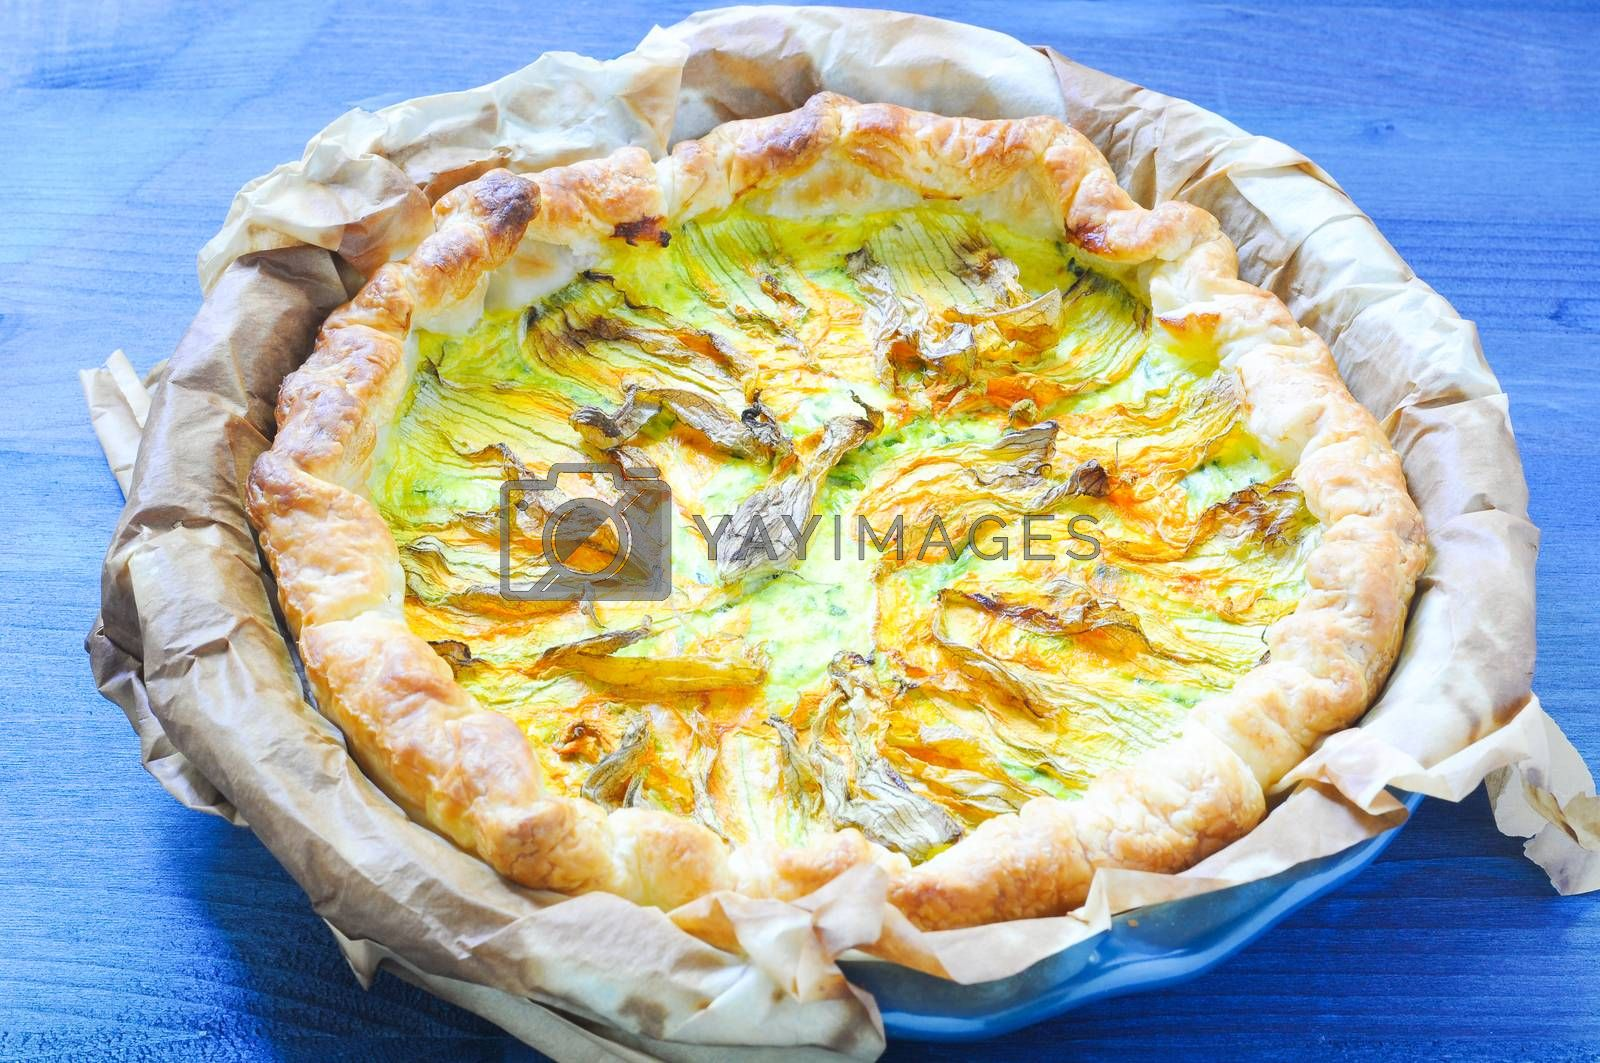 Royalty free image of Savory pie with ricotta, parmesan and zucchini flowers by gringox